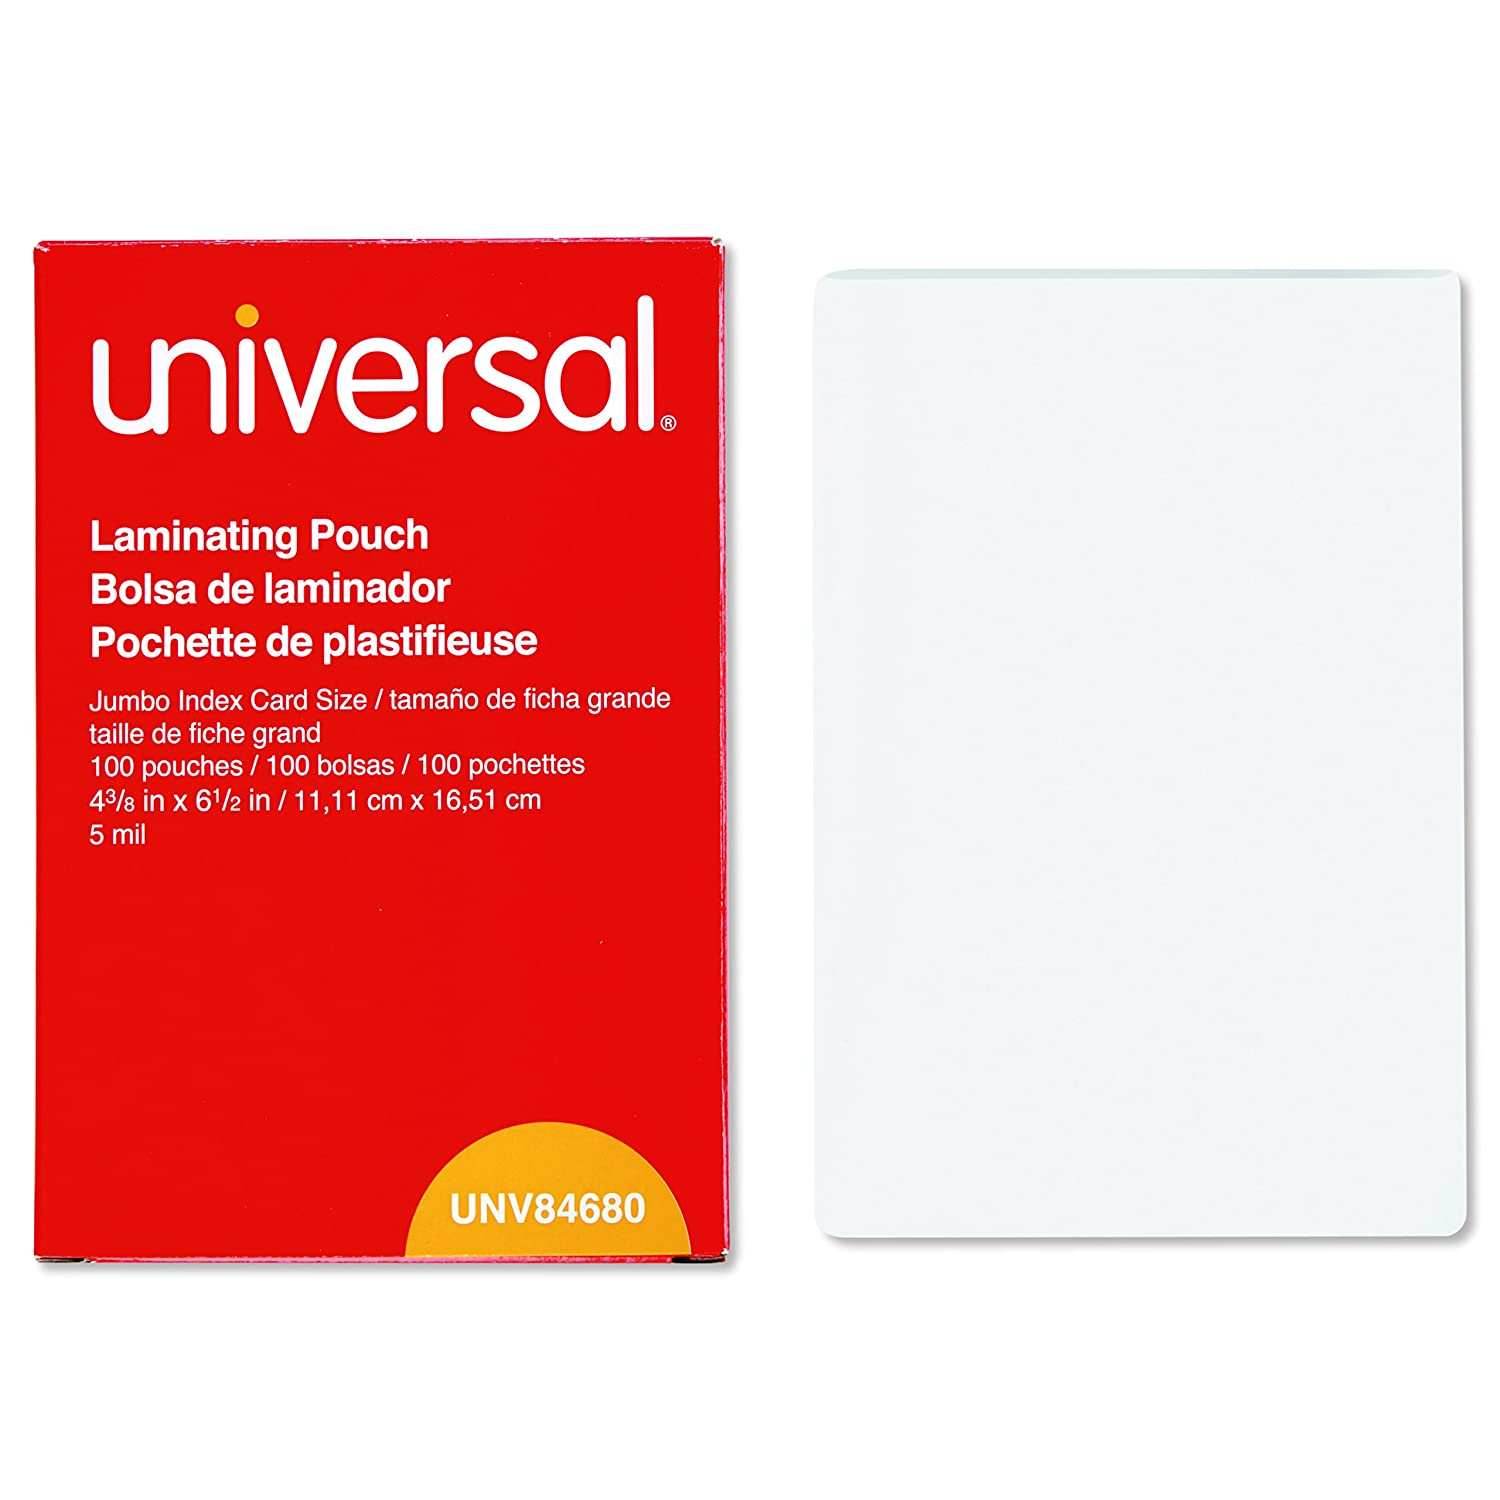 Universal 84680 Clear Laminating Pouches, 5 mil, 4 3/8 x 6 1/2, Photo Size (Box of 100)